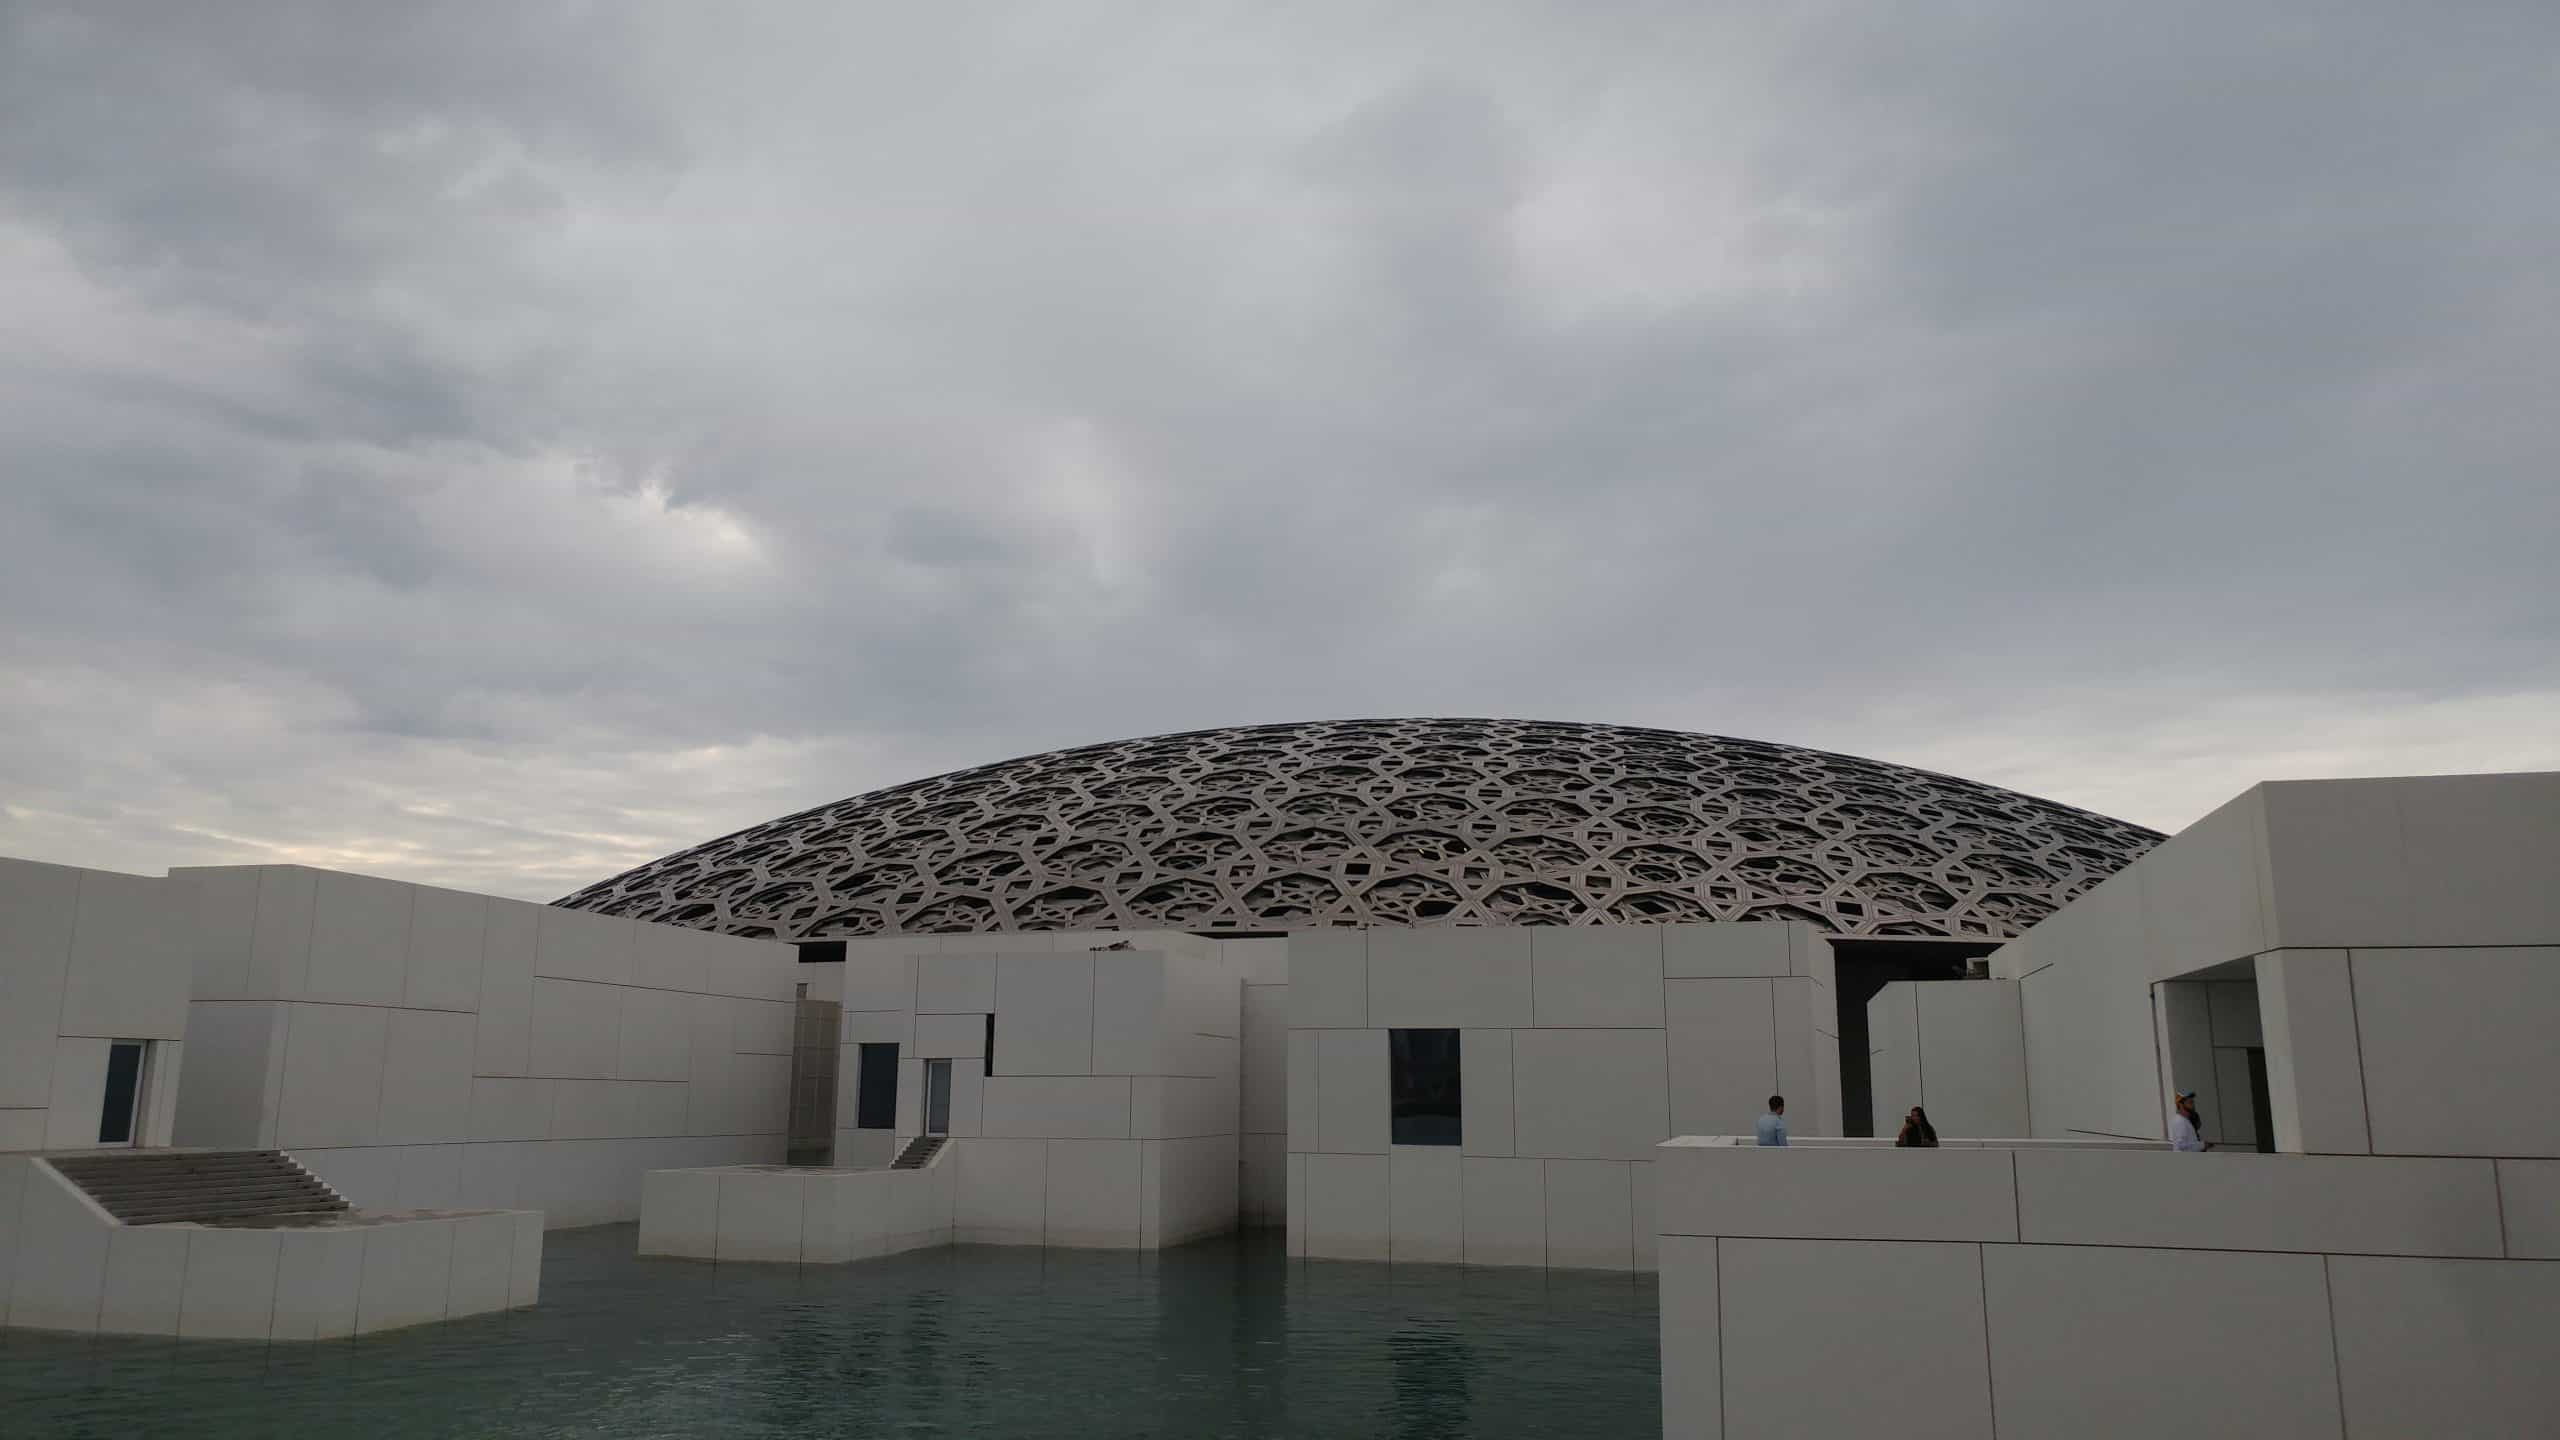 Transformers for Louvre in Abu Dhabi